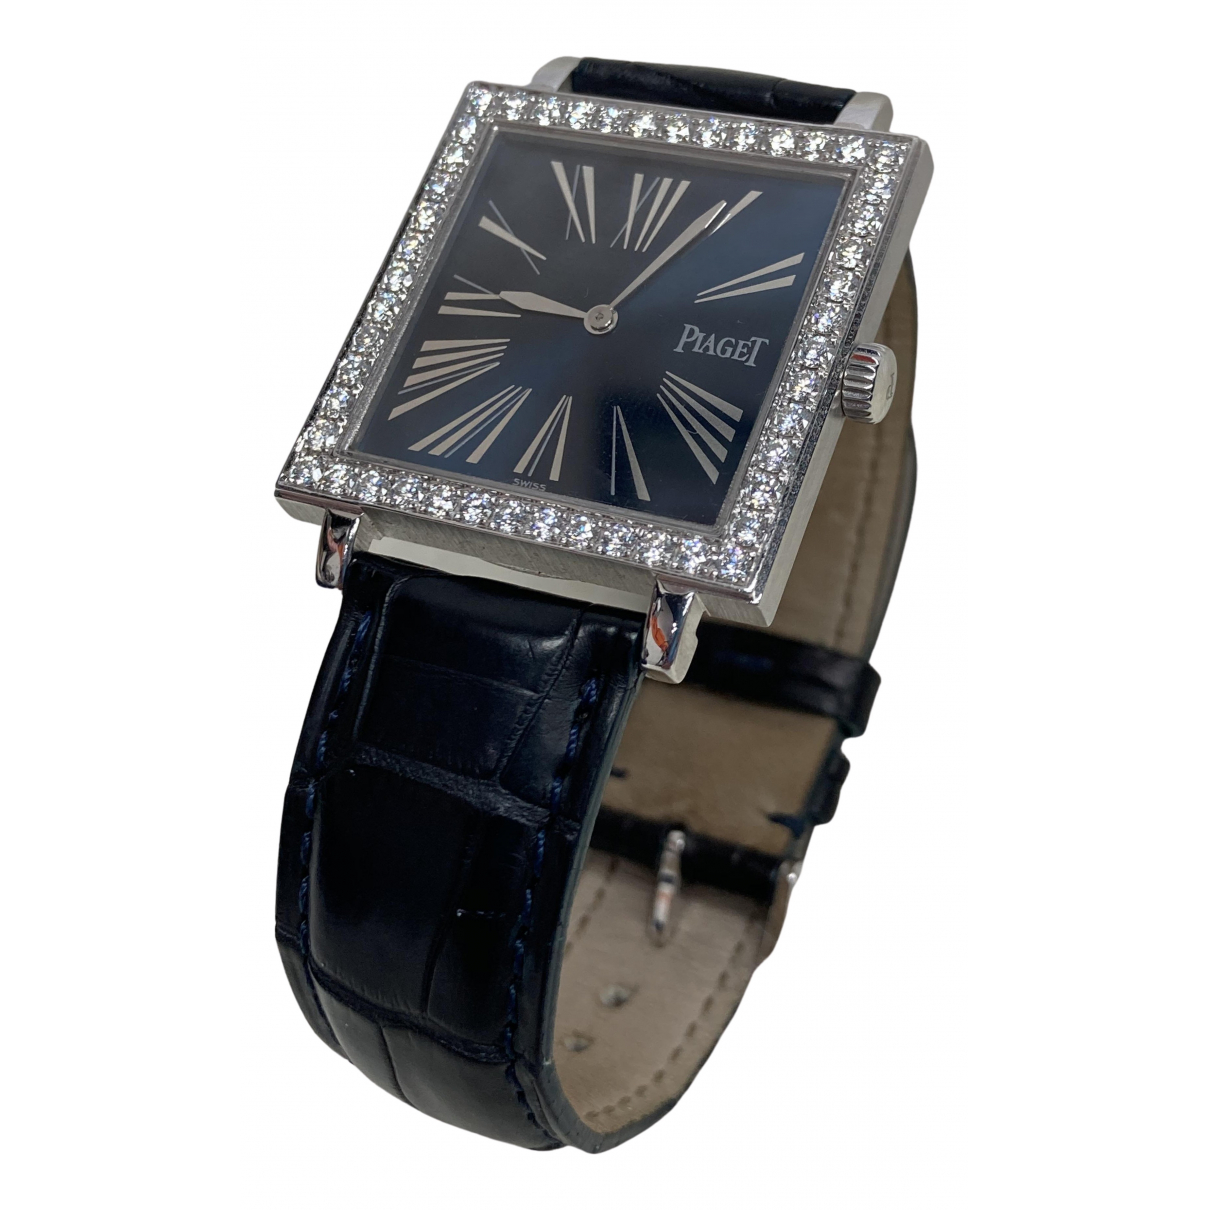 Piaget \N Blue White gold watch for Women \N